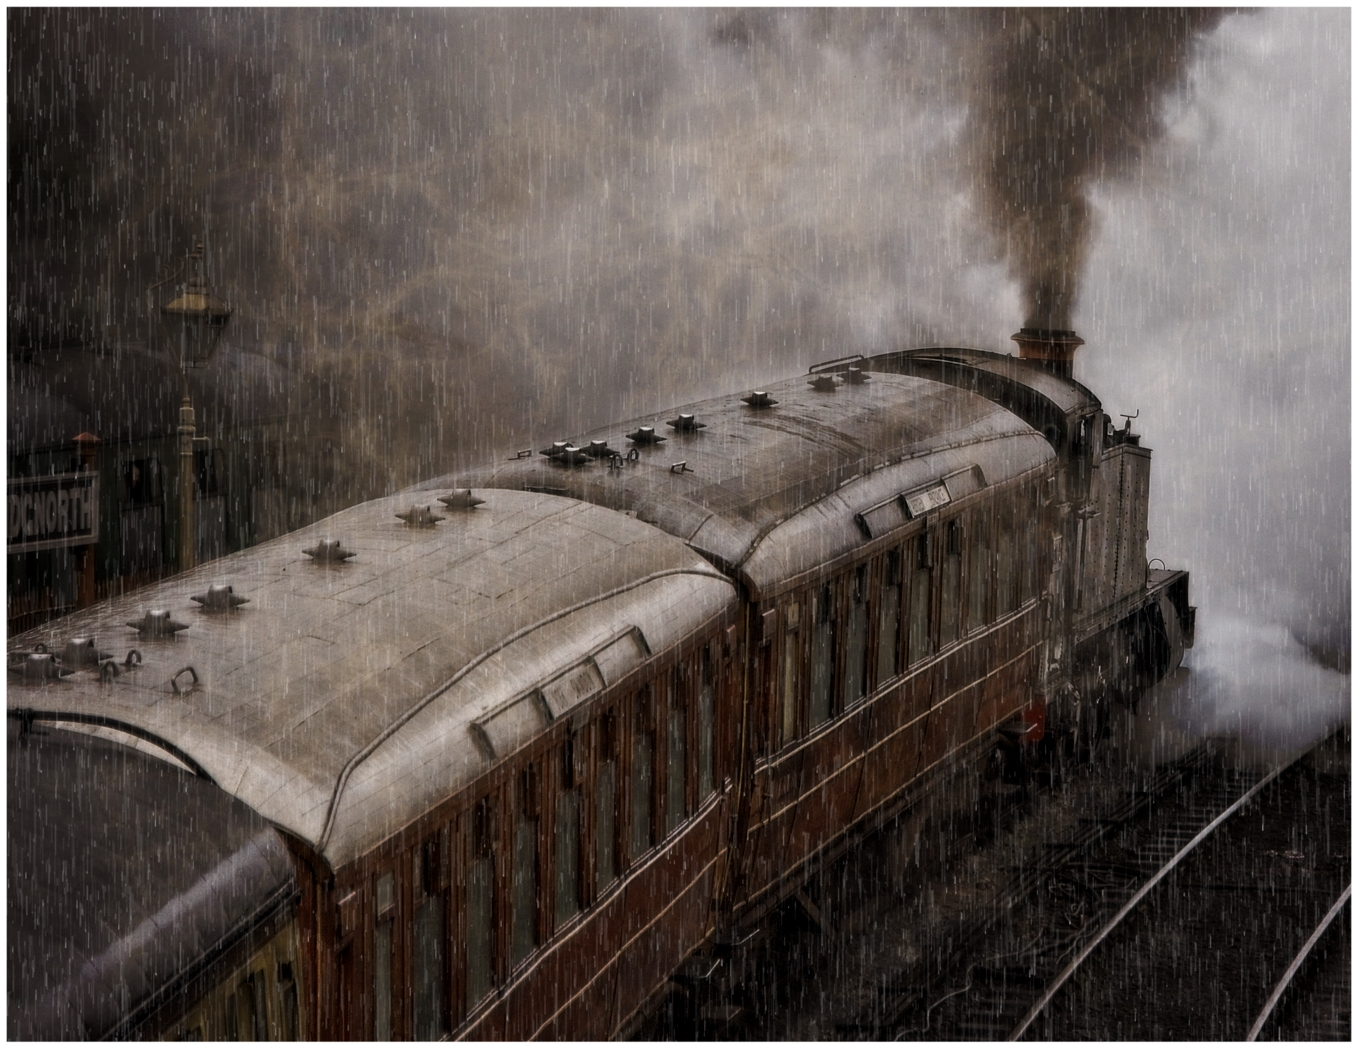 2nd Place: Ghost Train (Fraser Johnston)